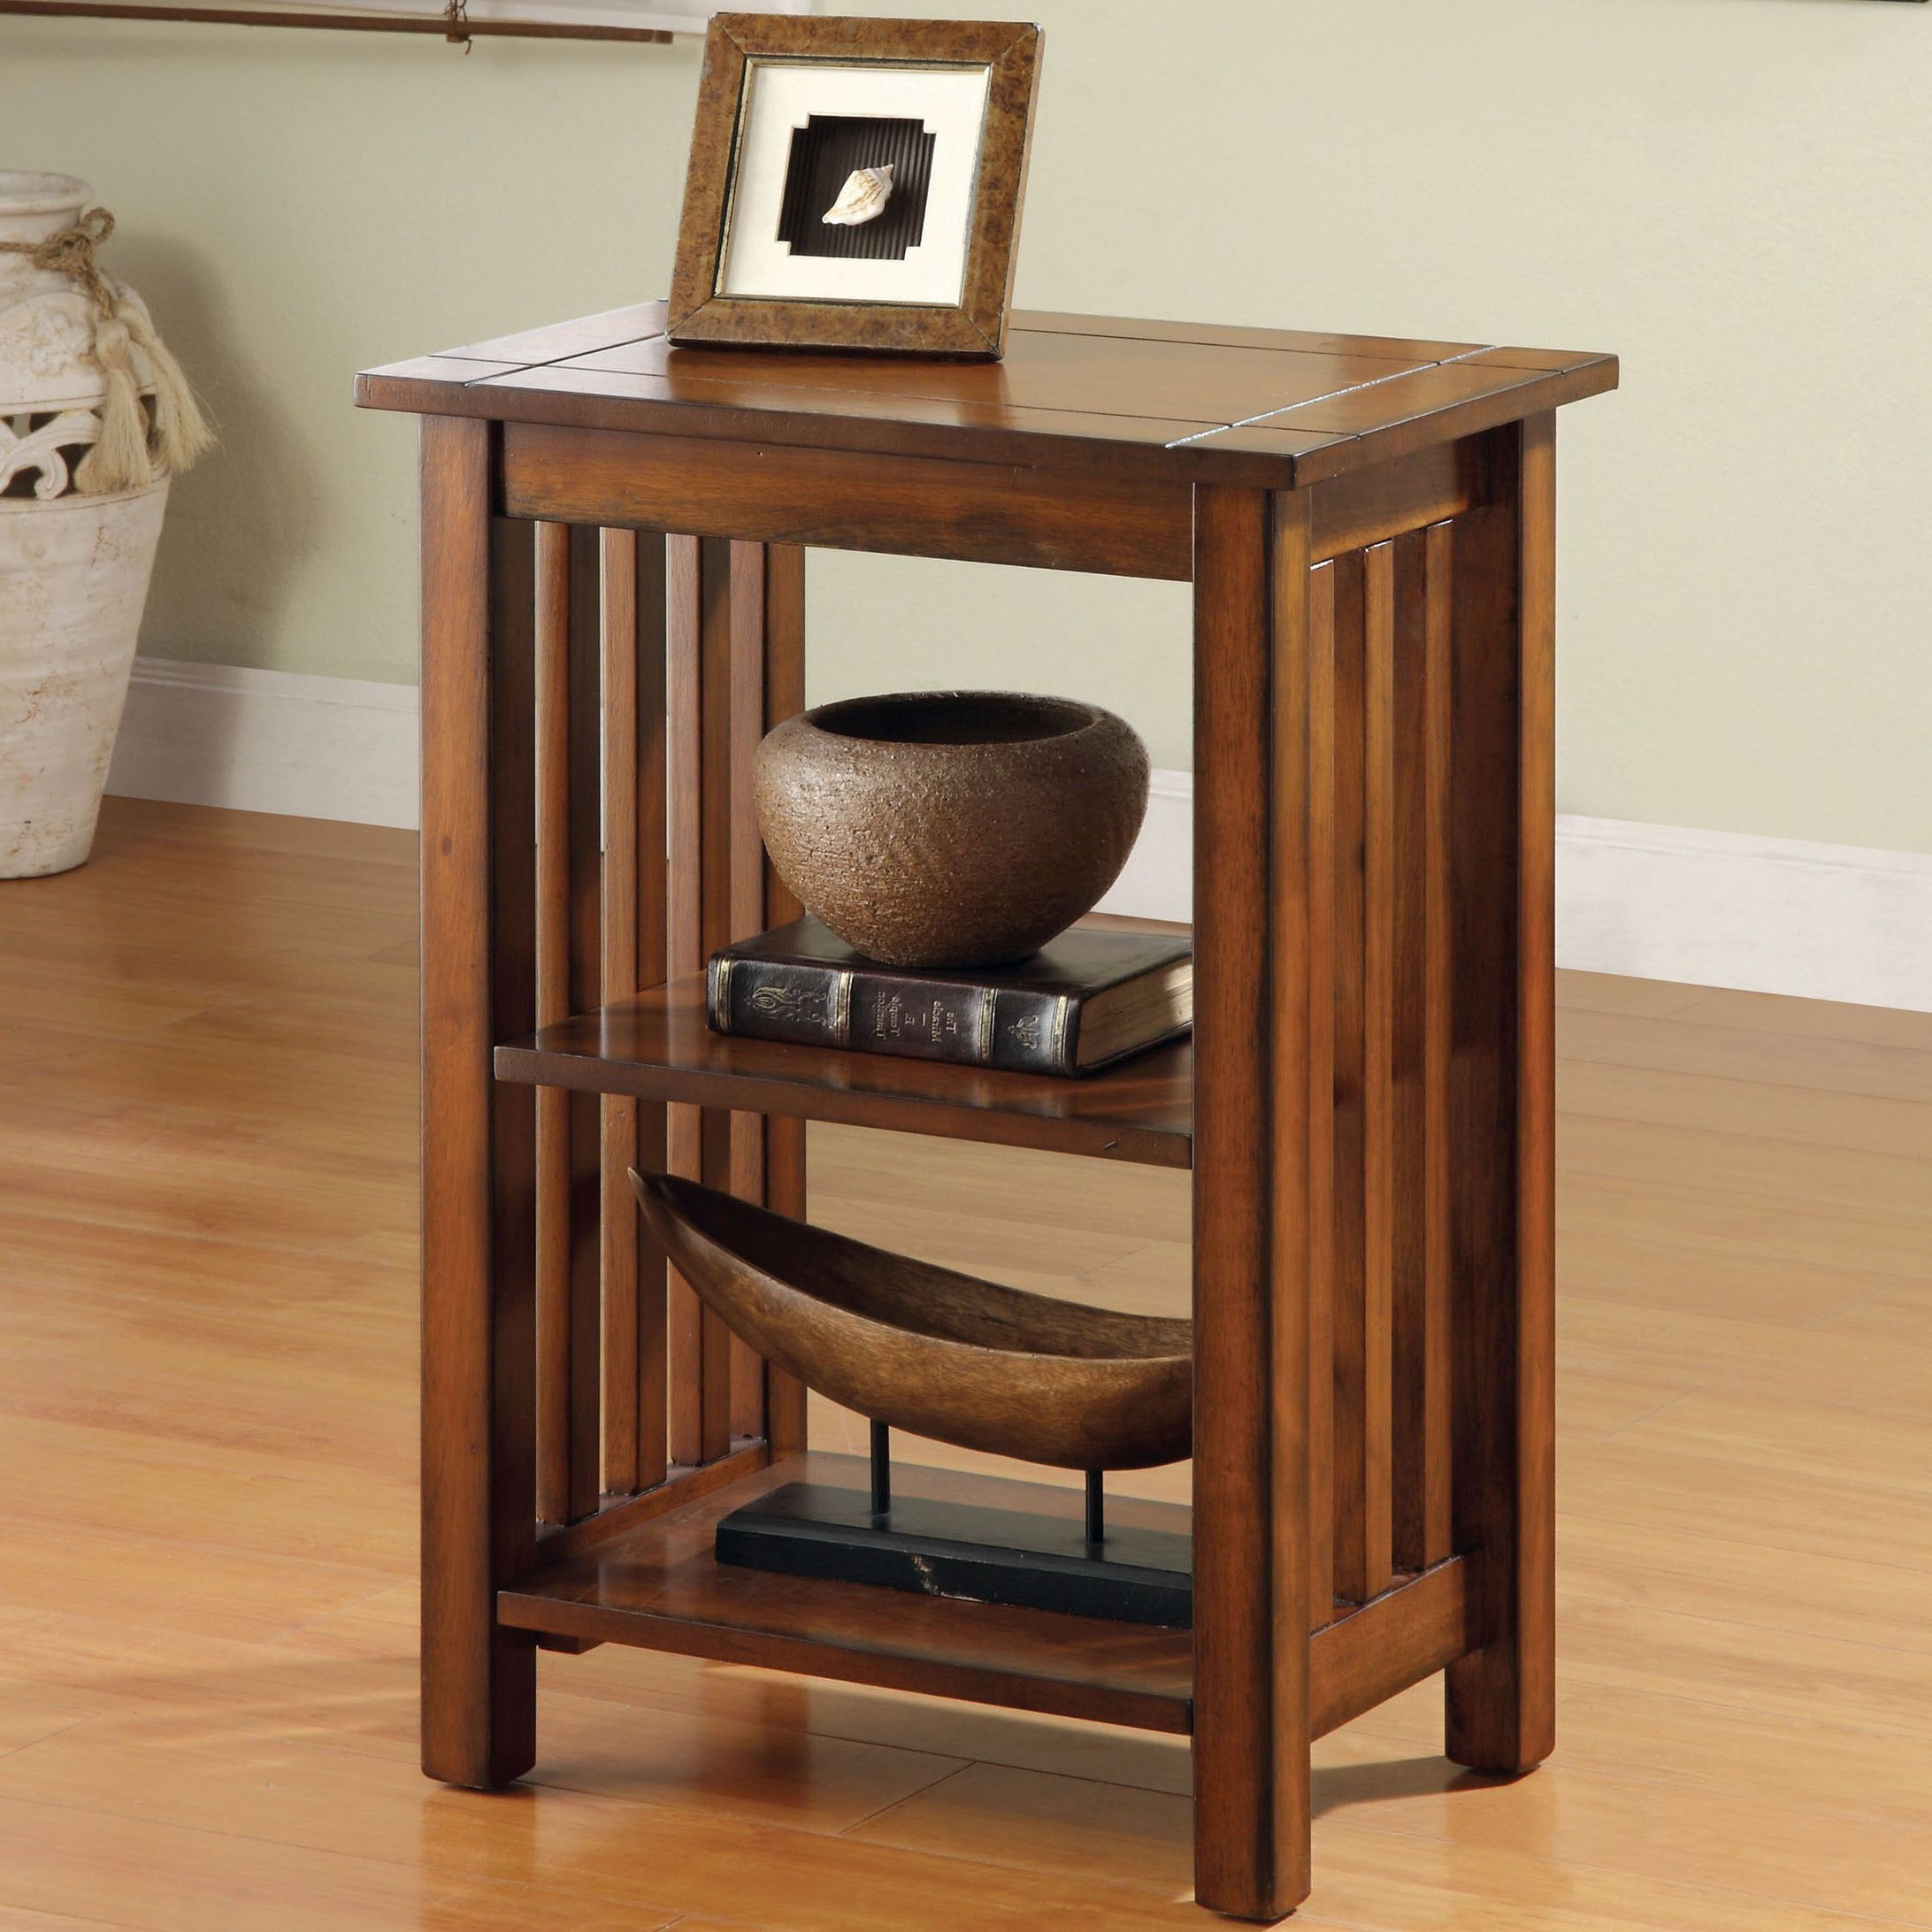 Furniture Of America U0027Valentinu0027 Antique Oak Mission Style End Table    Overstock™ Shopping   Great Deals On Furniture Of America Coffee, Sofa U0026 End  Tables